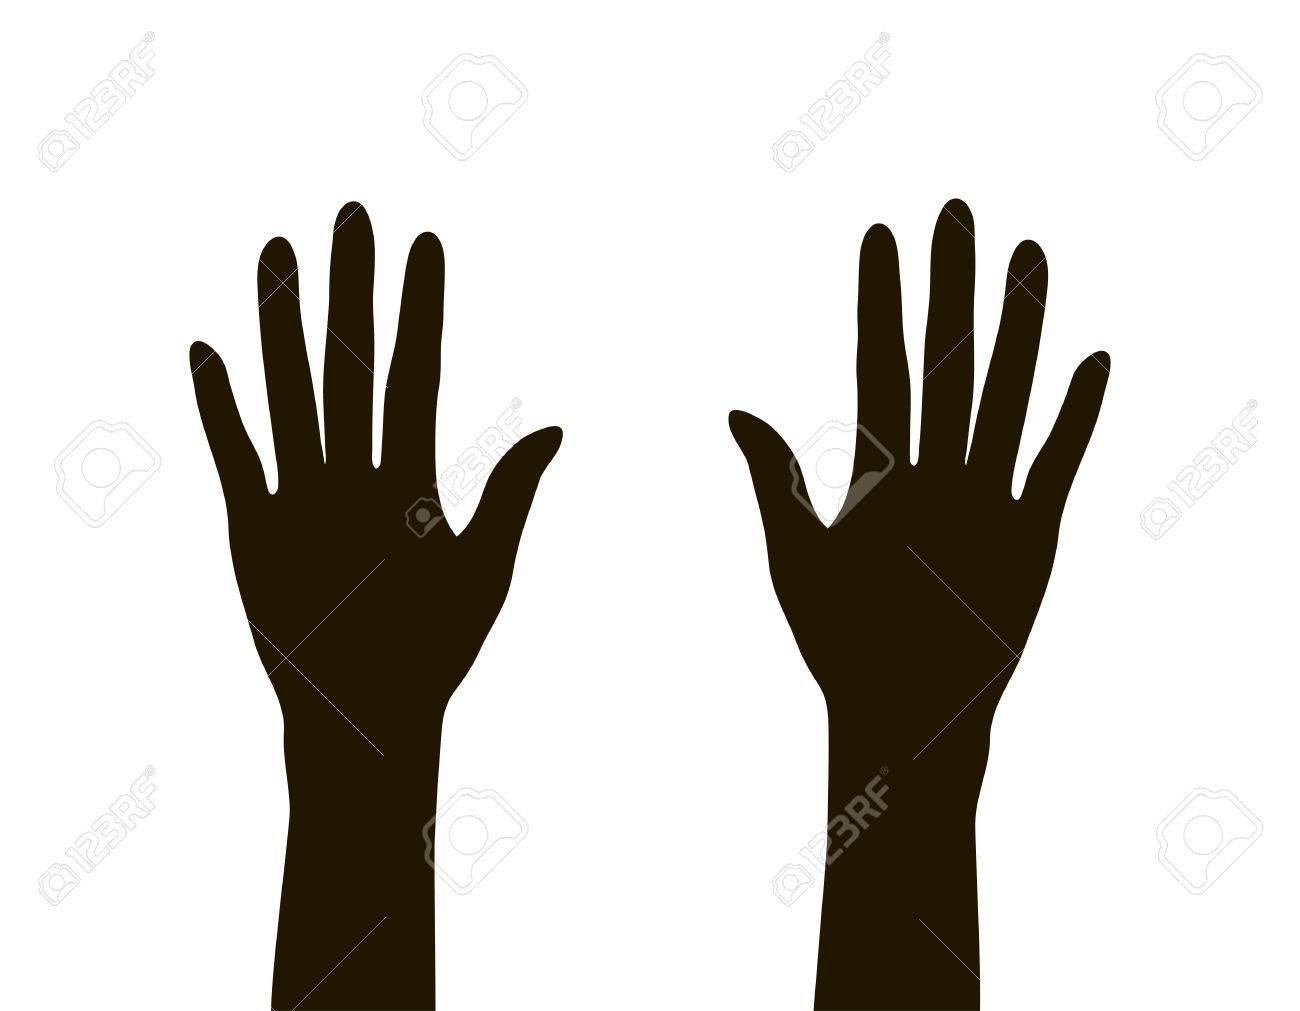 hands silhouette isolated on white background, vector illustration Stock Vector - 20911879